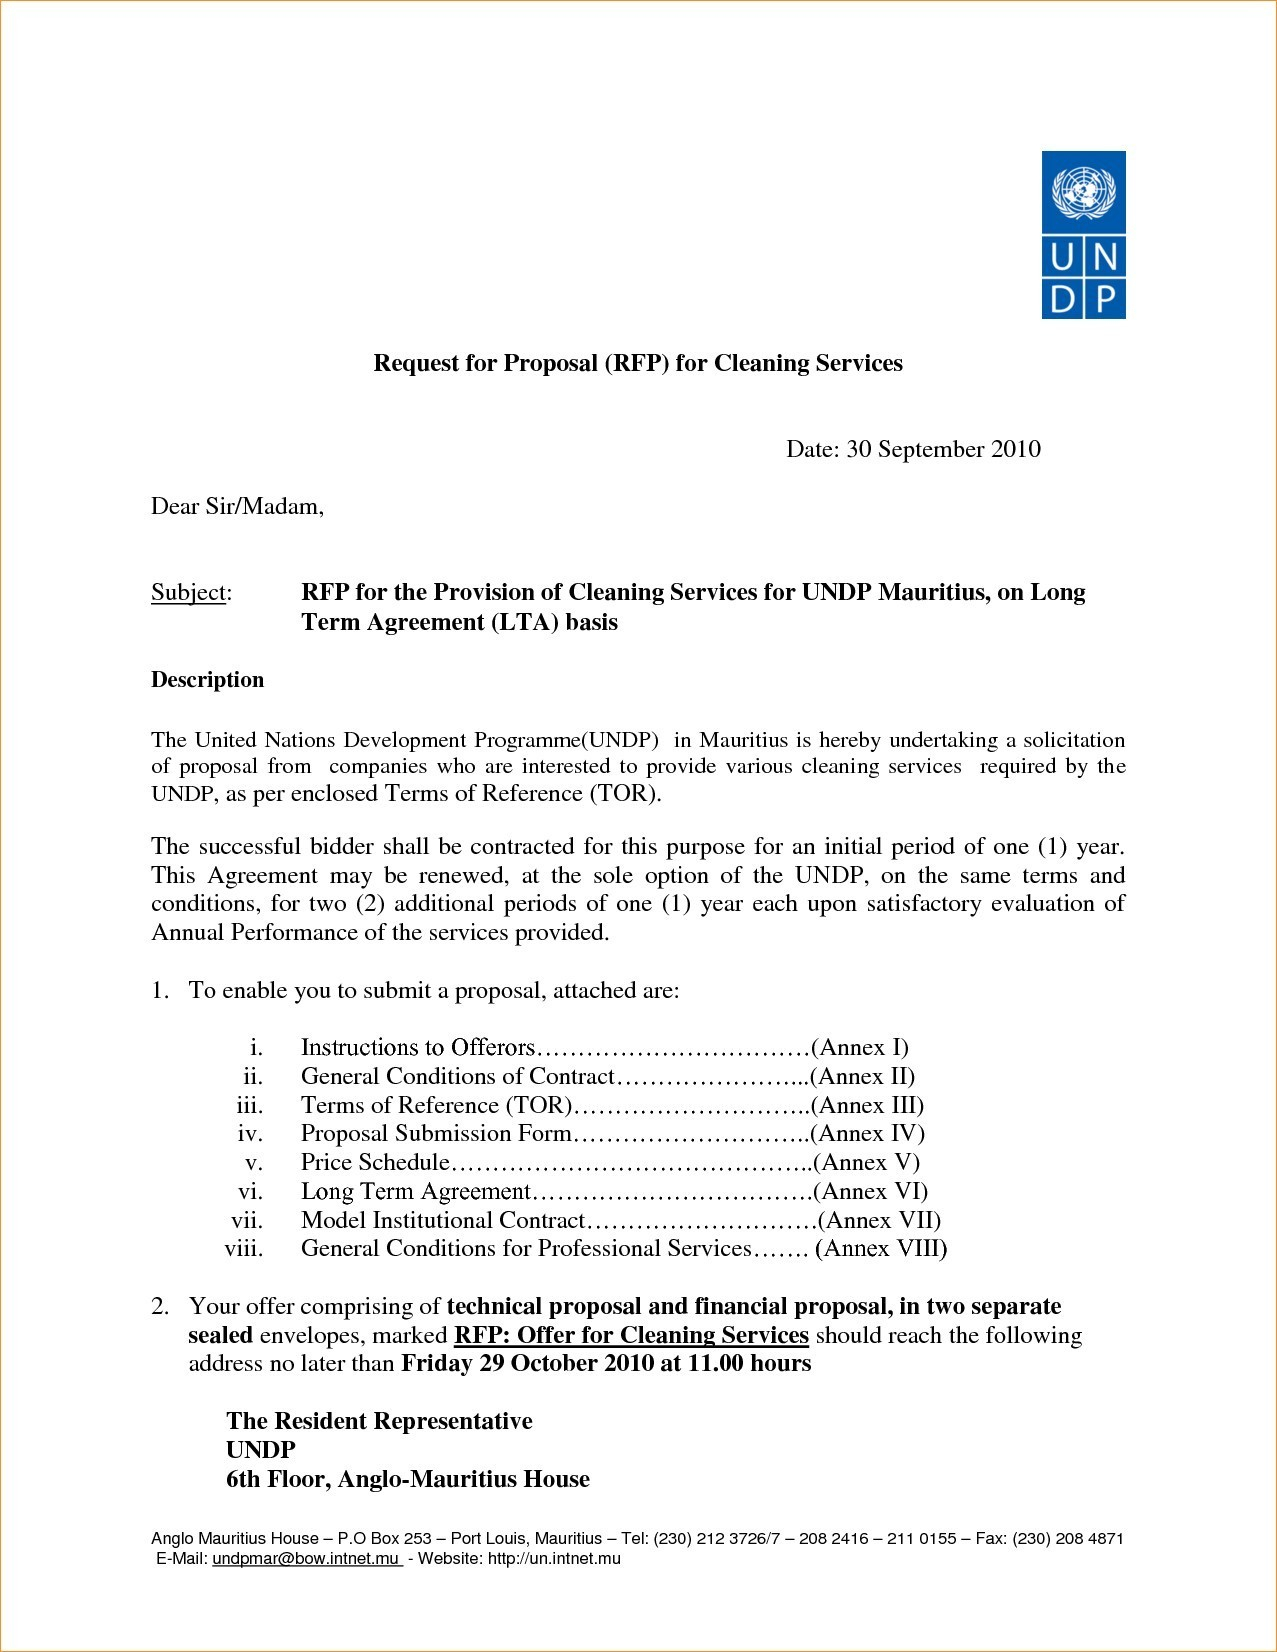 therapist marketing letter template Collection-Therapist Marketing Letter Template Examples 18-l